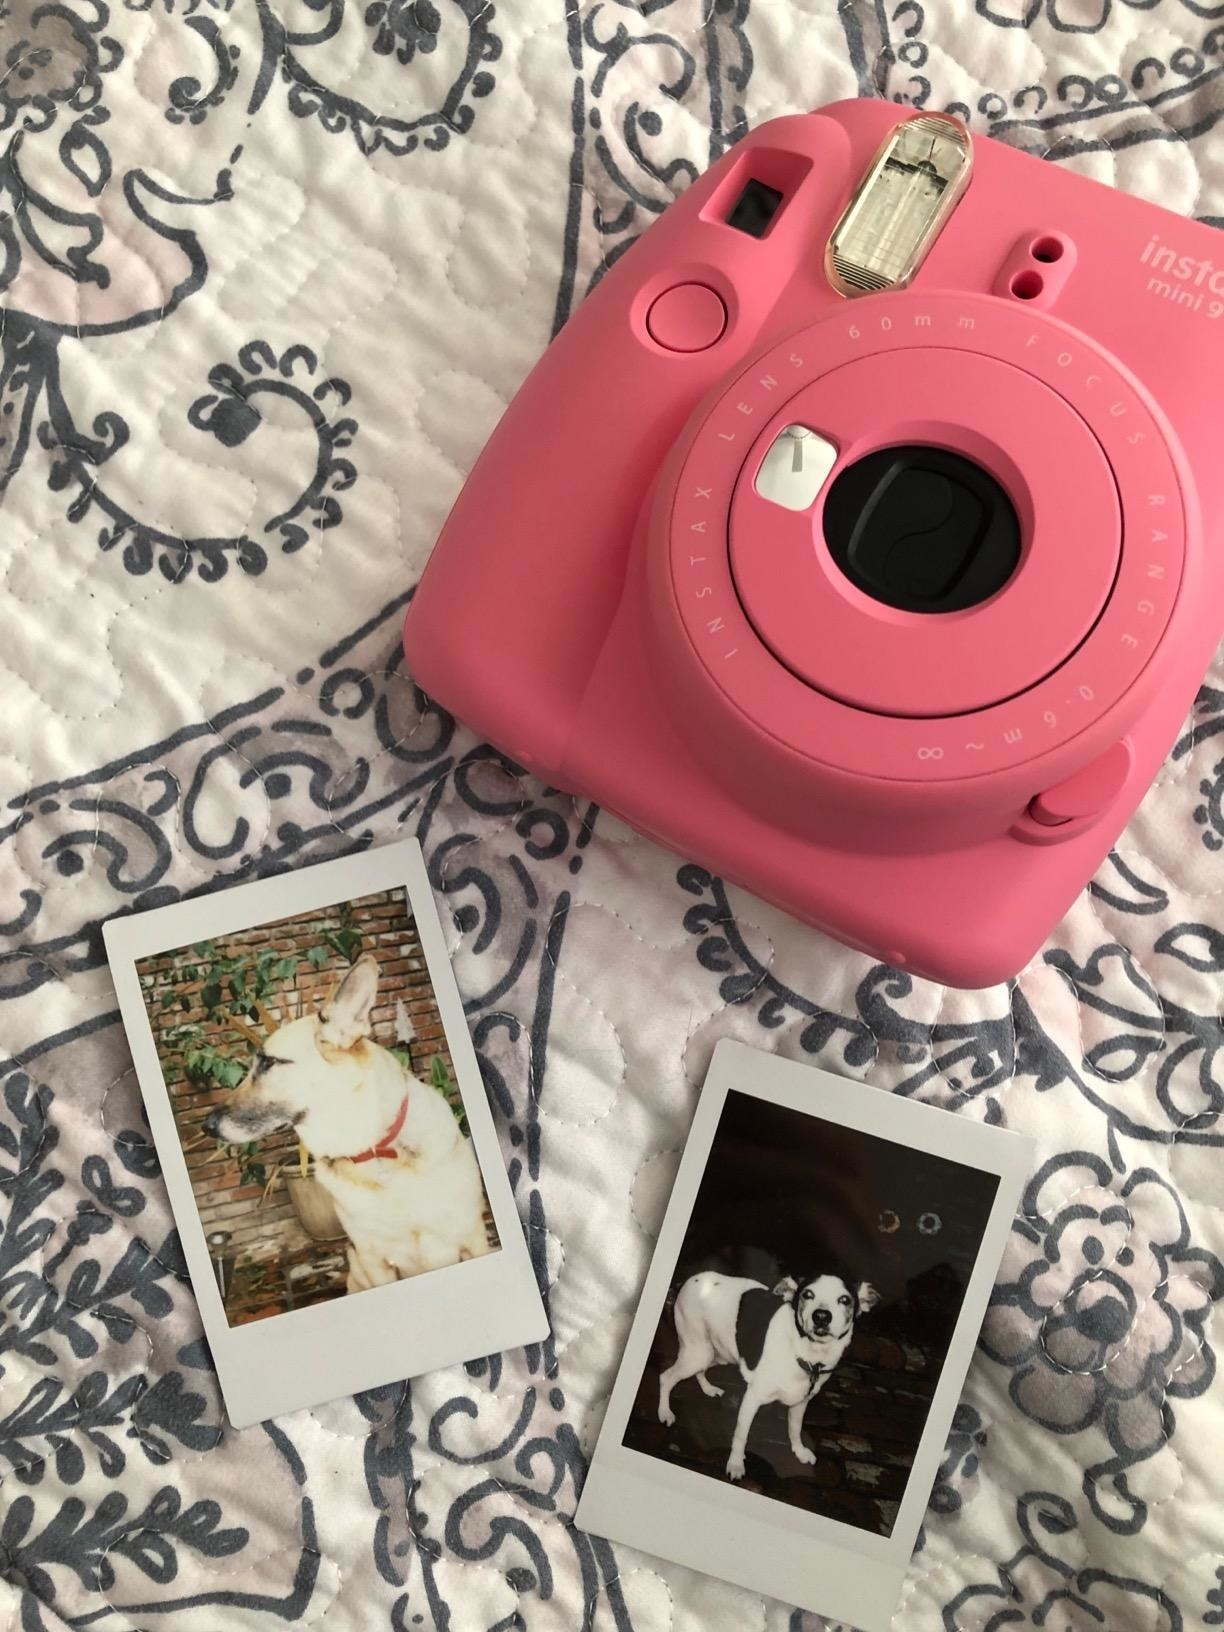 A reviewer showing the pink camera with instant photos of their dogs